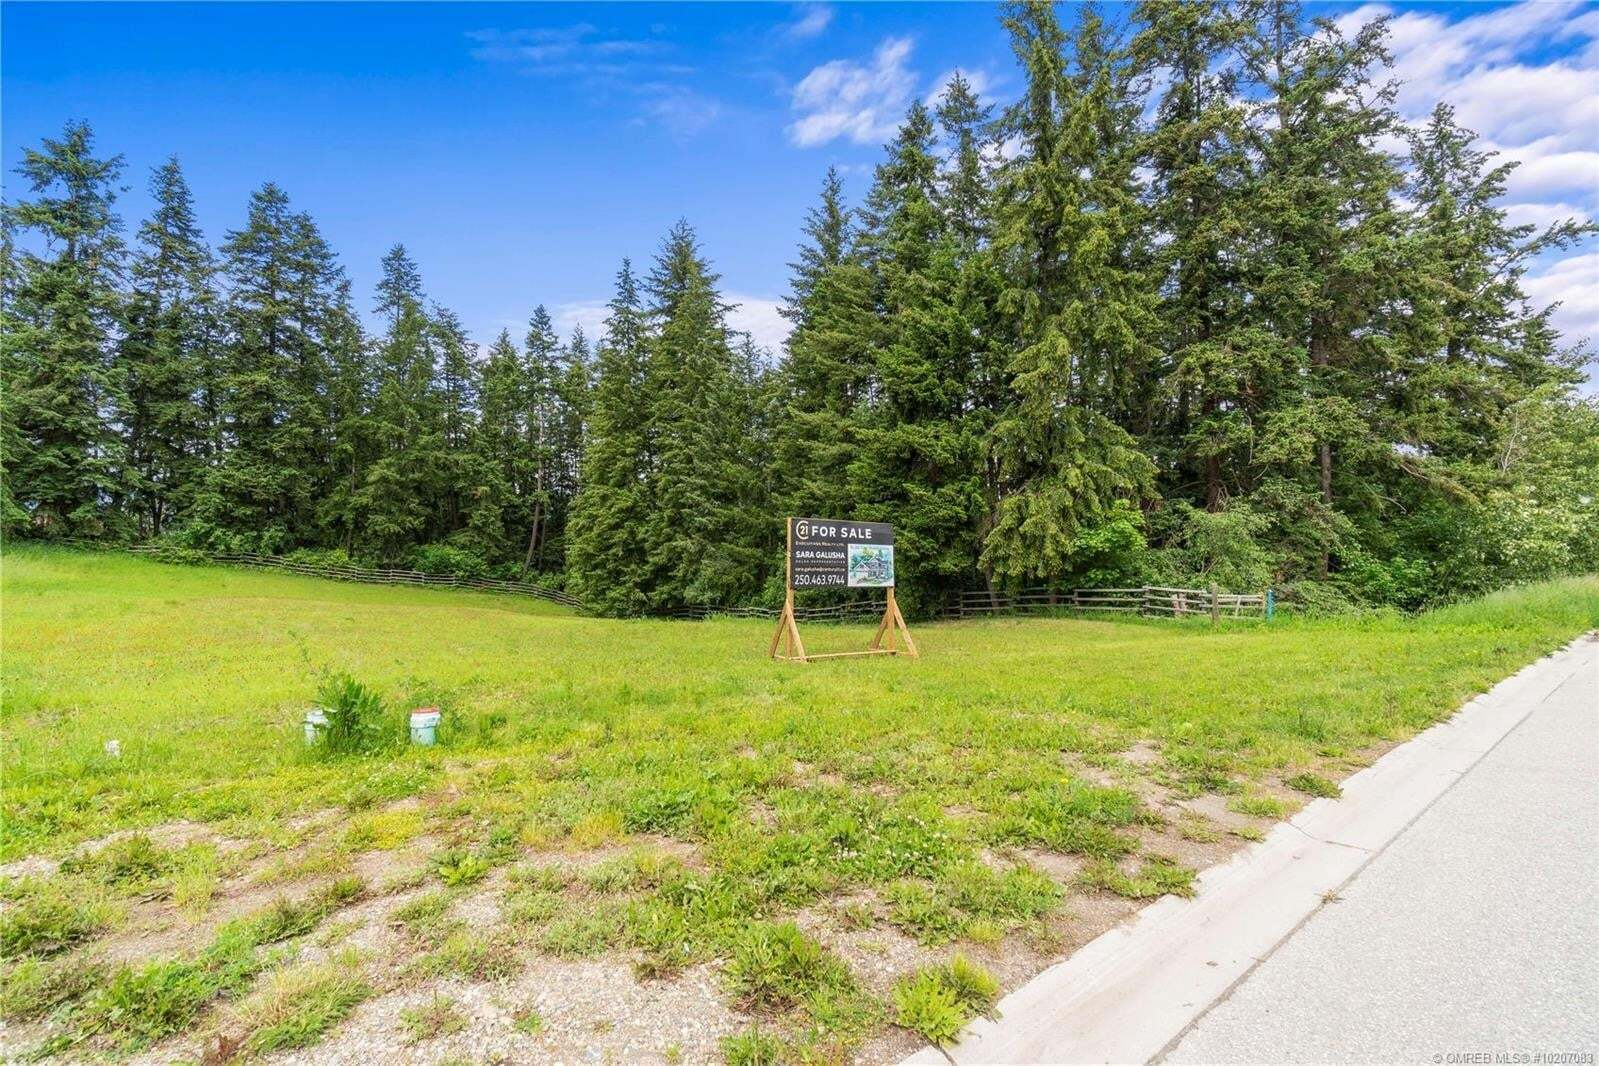 Residential property for sale at 1831 22 St Northeast Salmon Arm British Columbia - MLS: 10207083